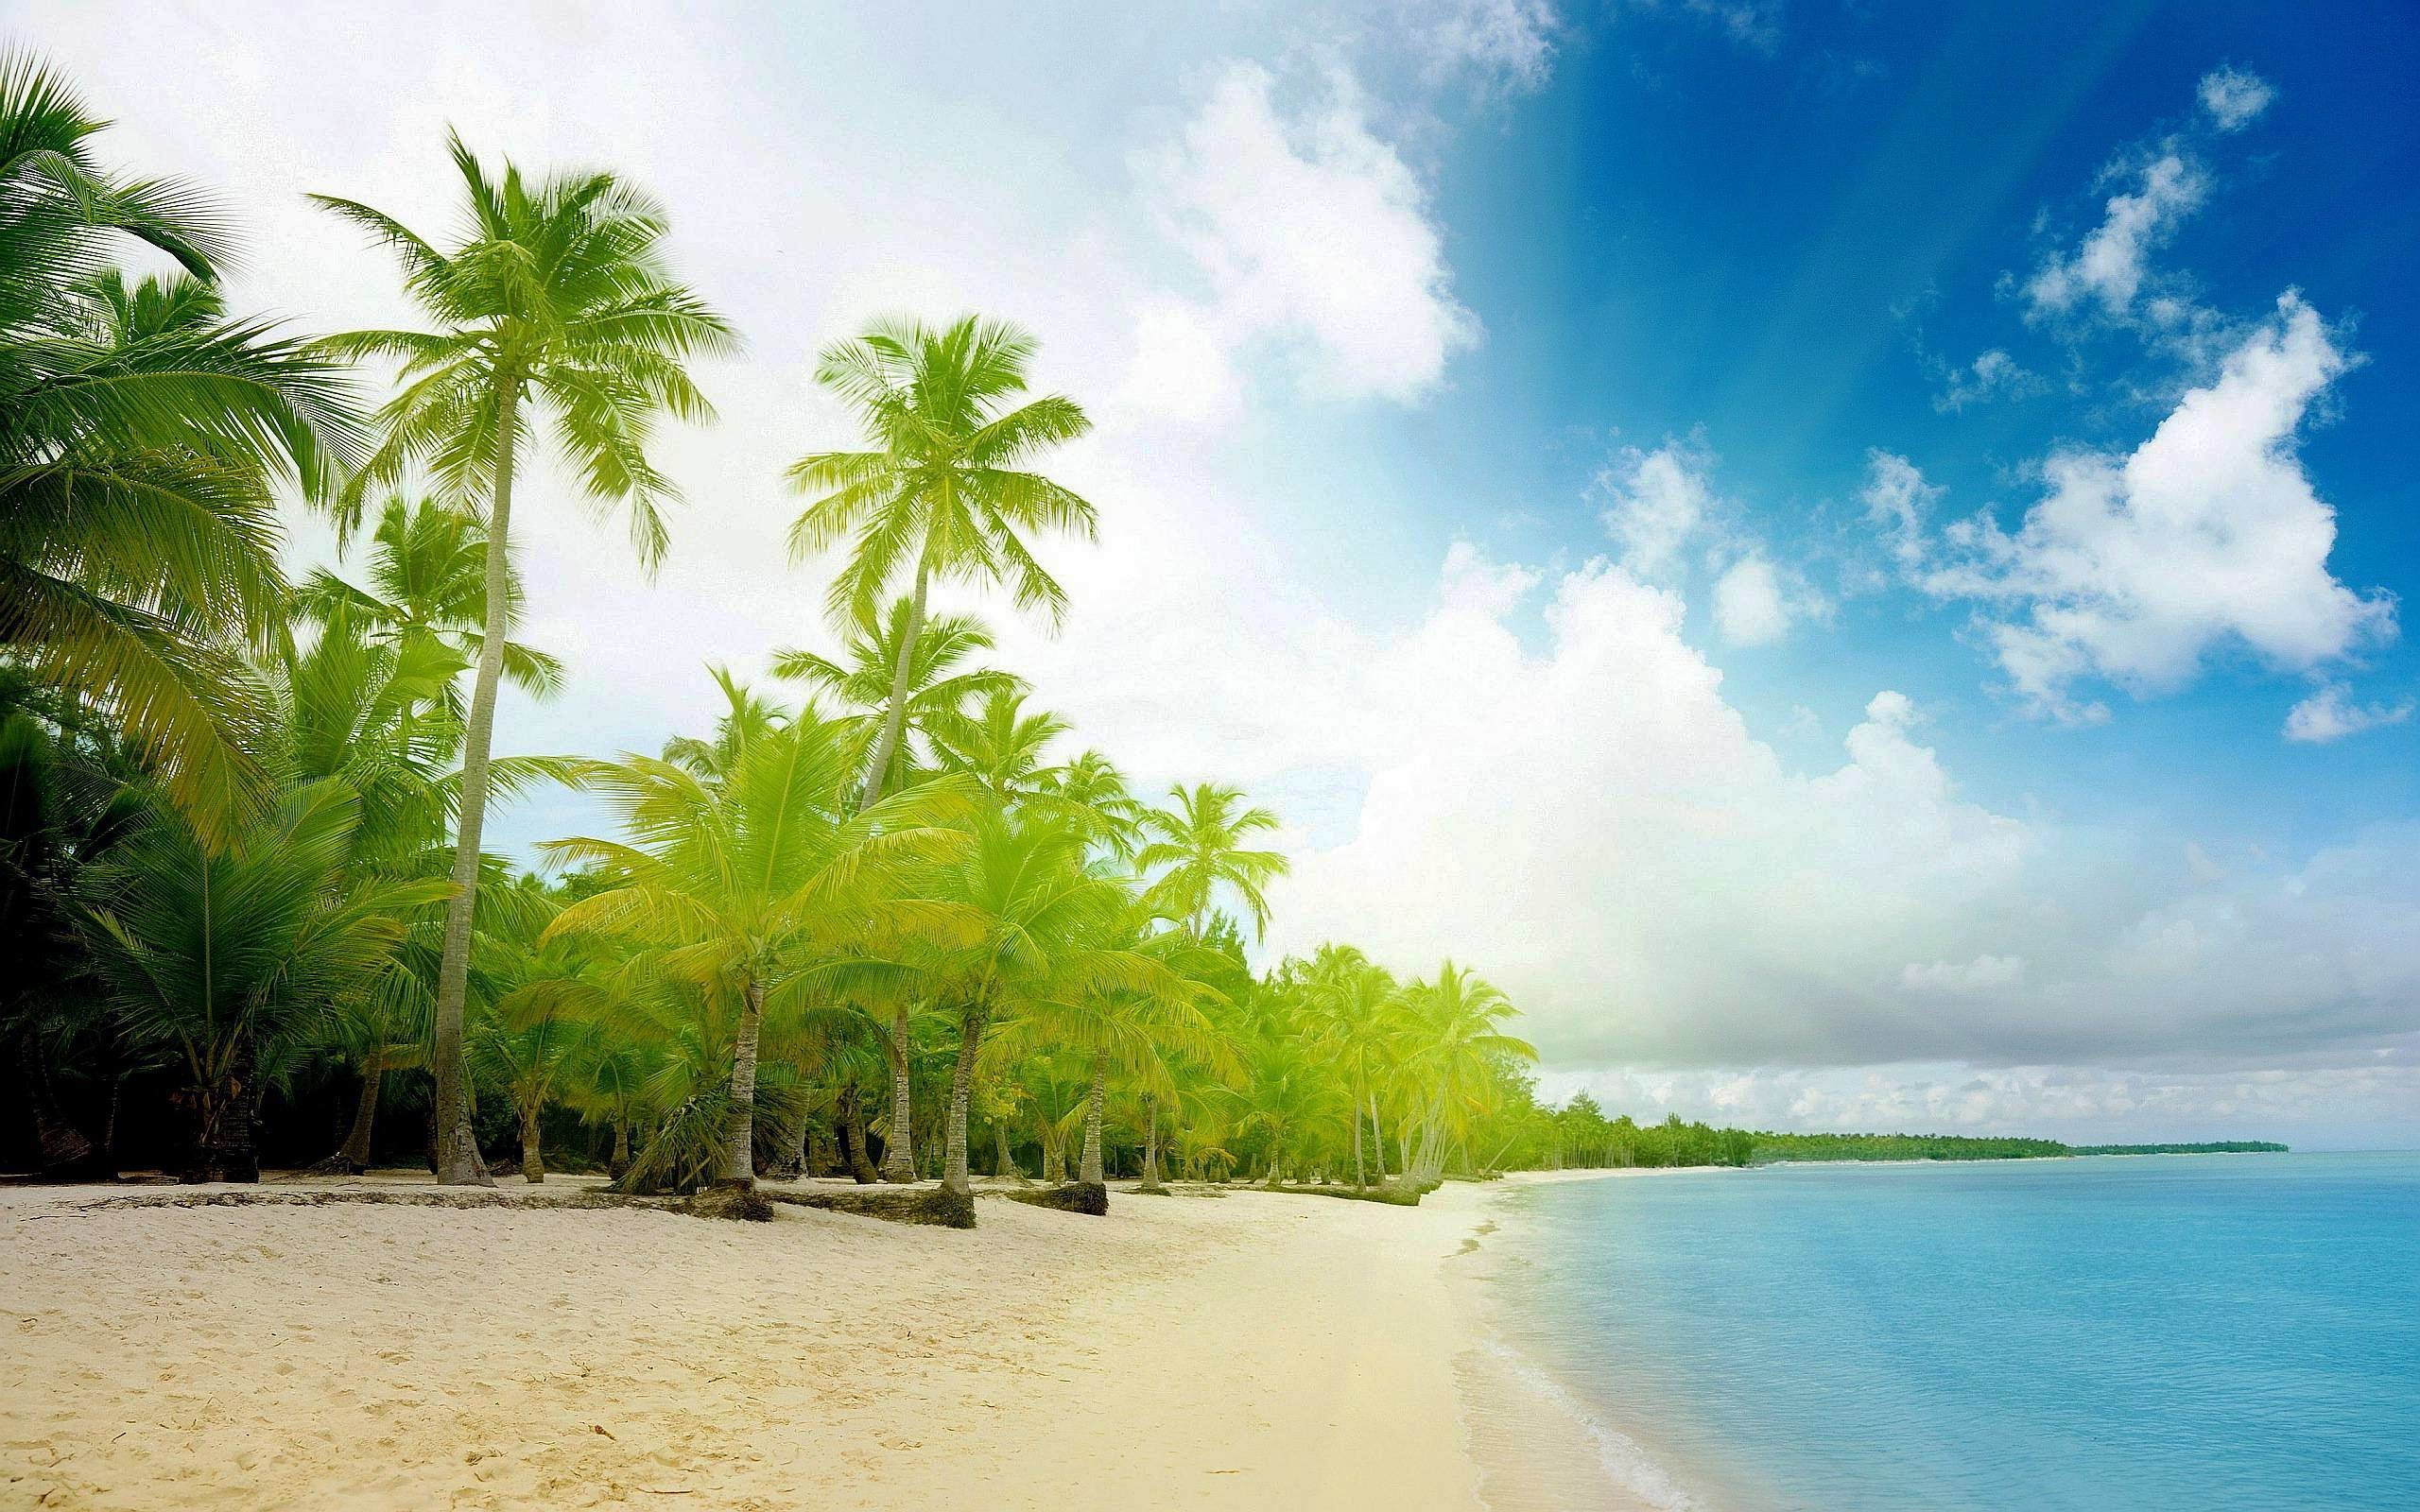 2560x1600 Exotic Beaches Wallpapers Hd 1080P 12 HD Wallpapers | aladdino.